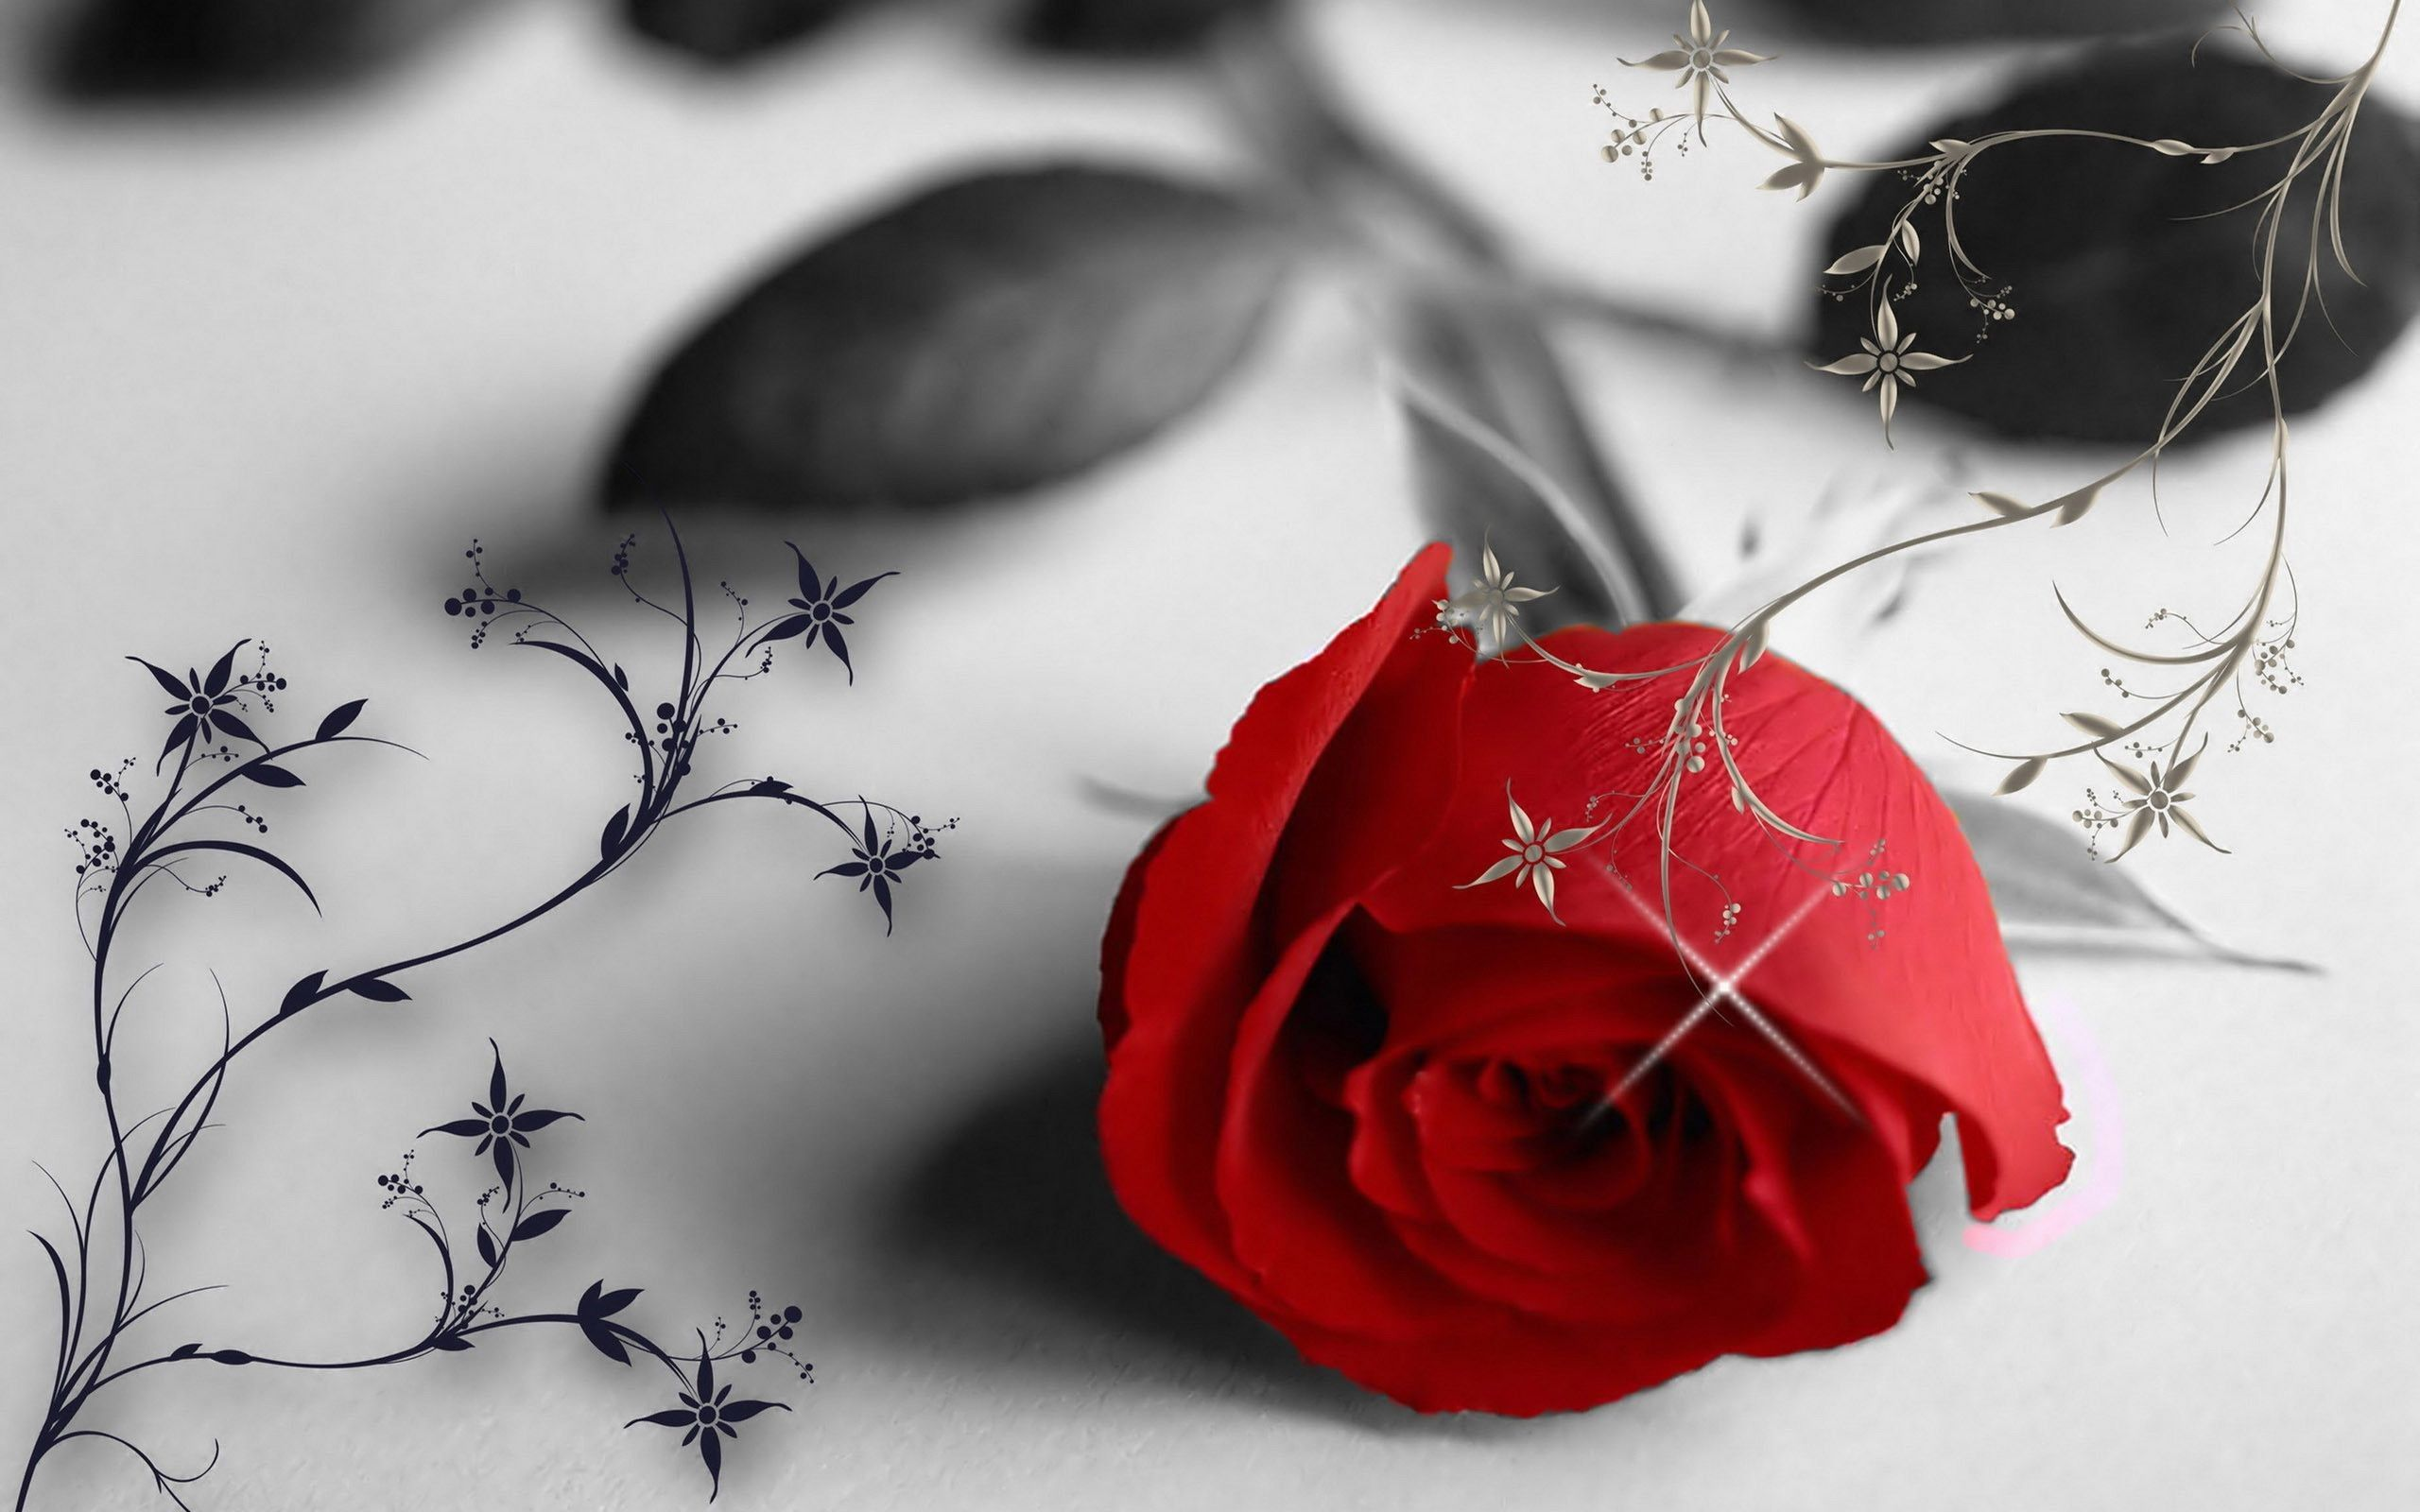 Red Rose In A Black And White Wallpaper Love Moments Flowers Wallpapers Nature Wallpapers Single Red Rose Rose Flower Wallpaper Flowers For Valentines Day